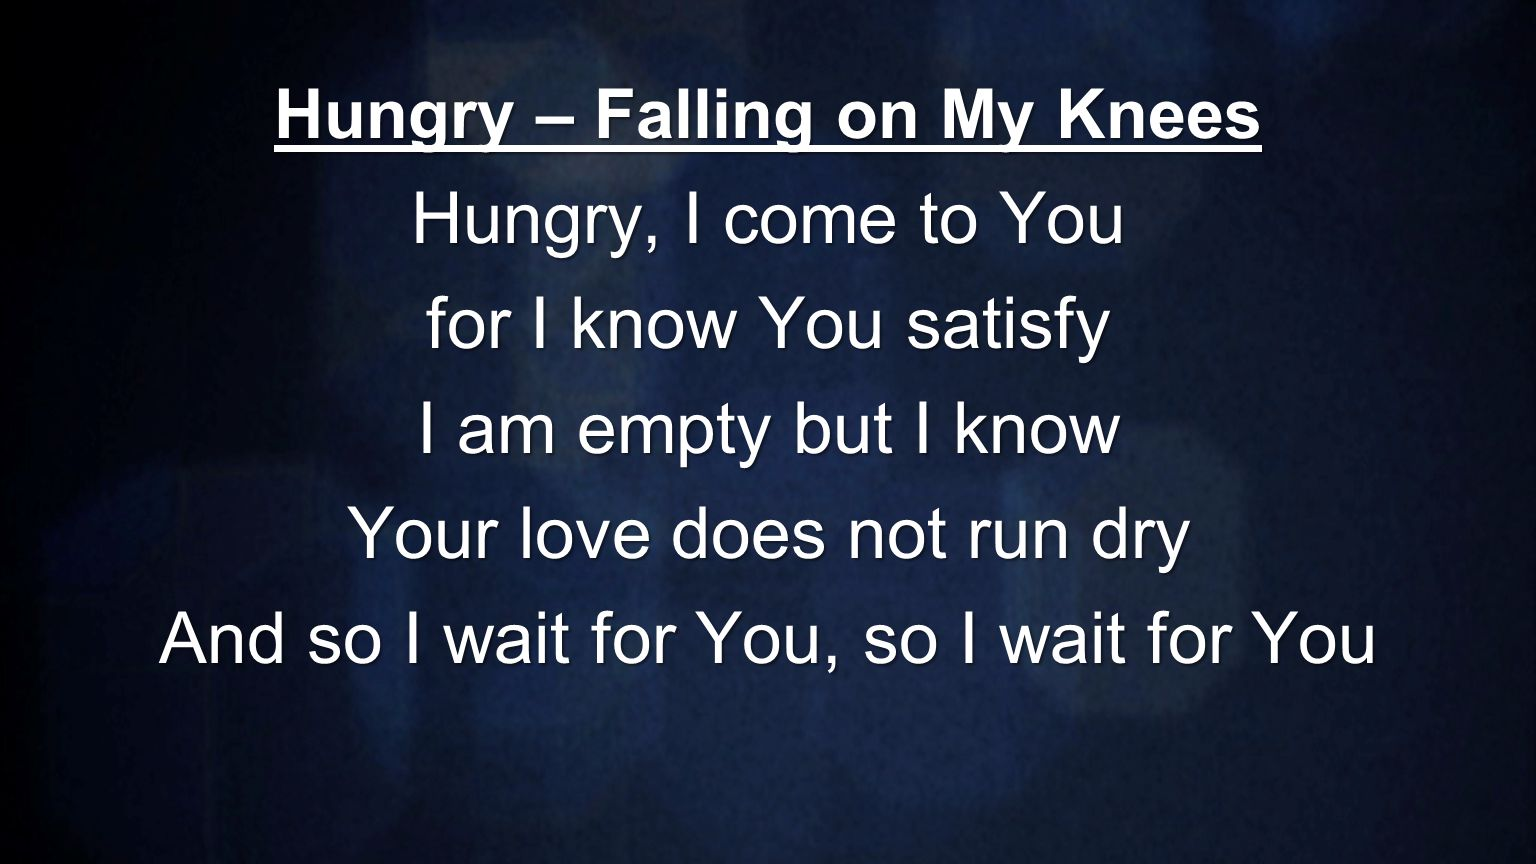 Hungry – Falling on My Knees Hungry, I come to You for I know You satisfy I am empty but I know Your love does not run dry And so I wait for You, so I